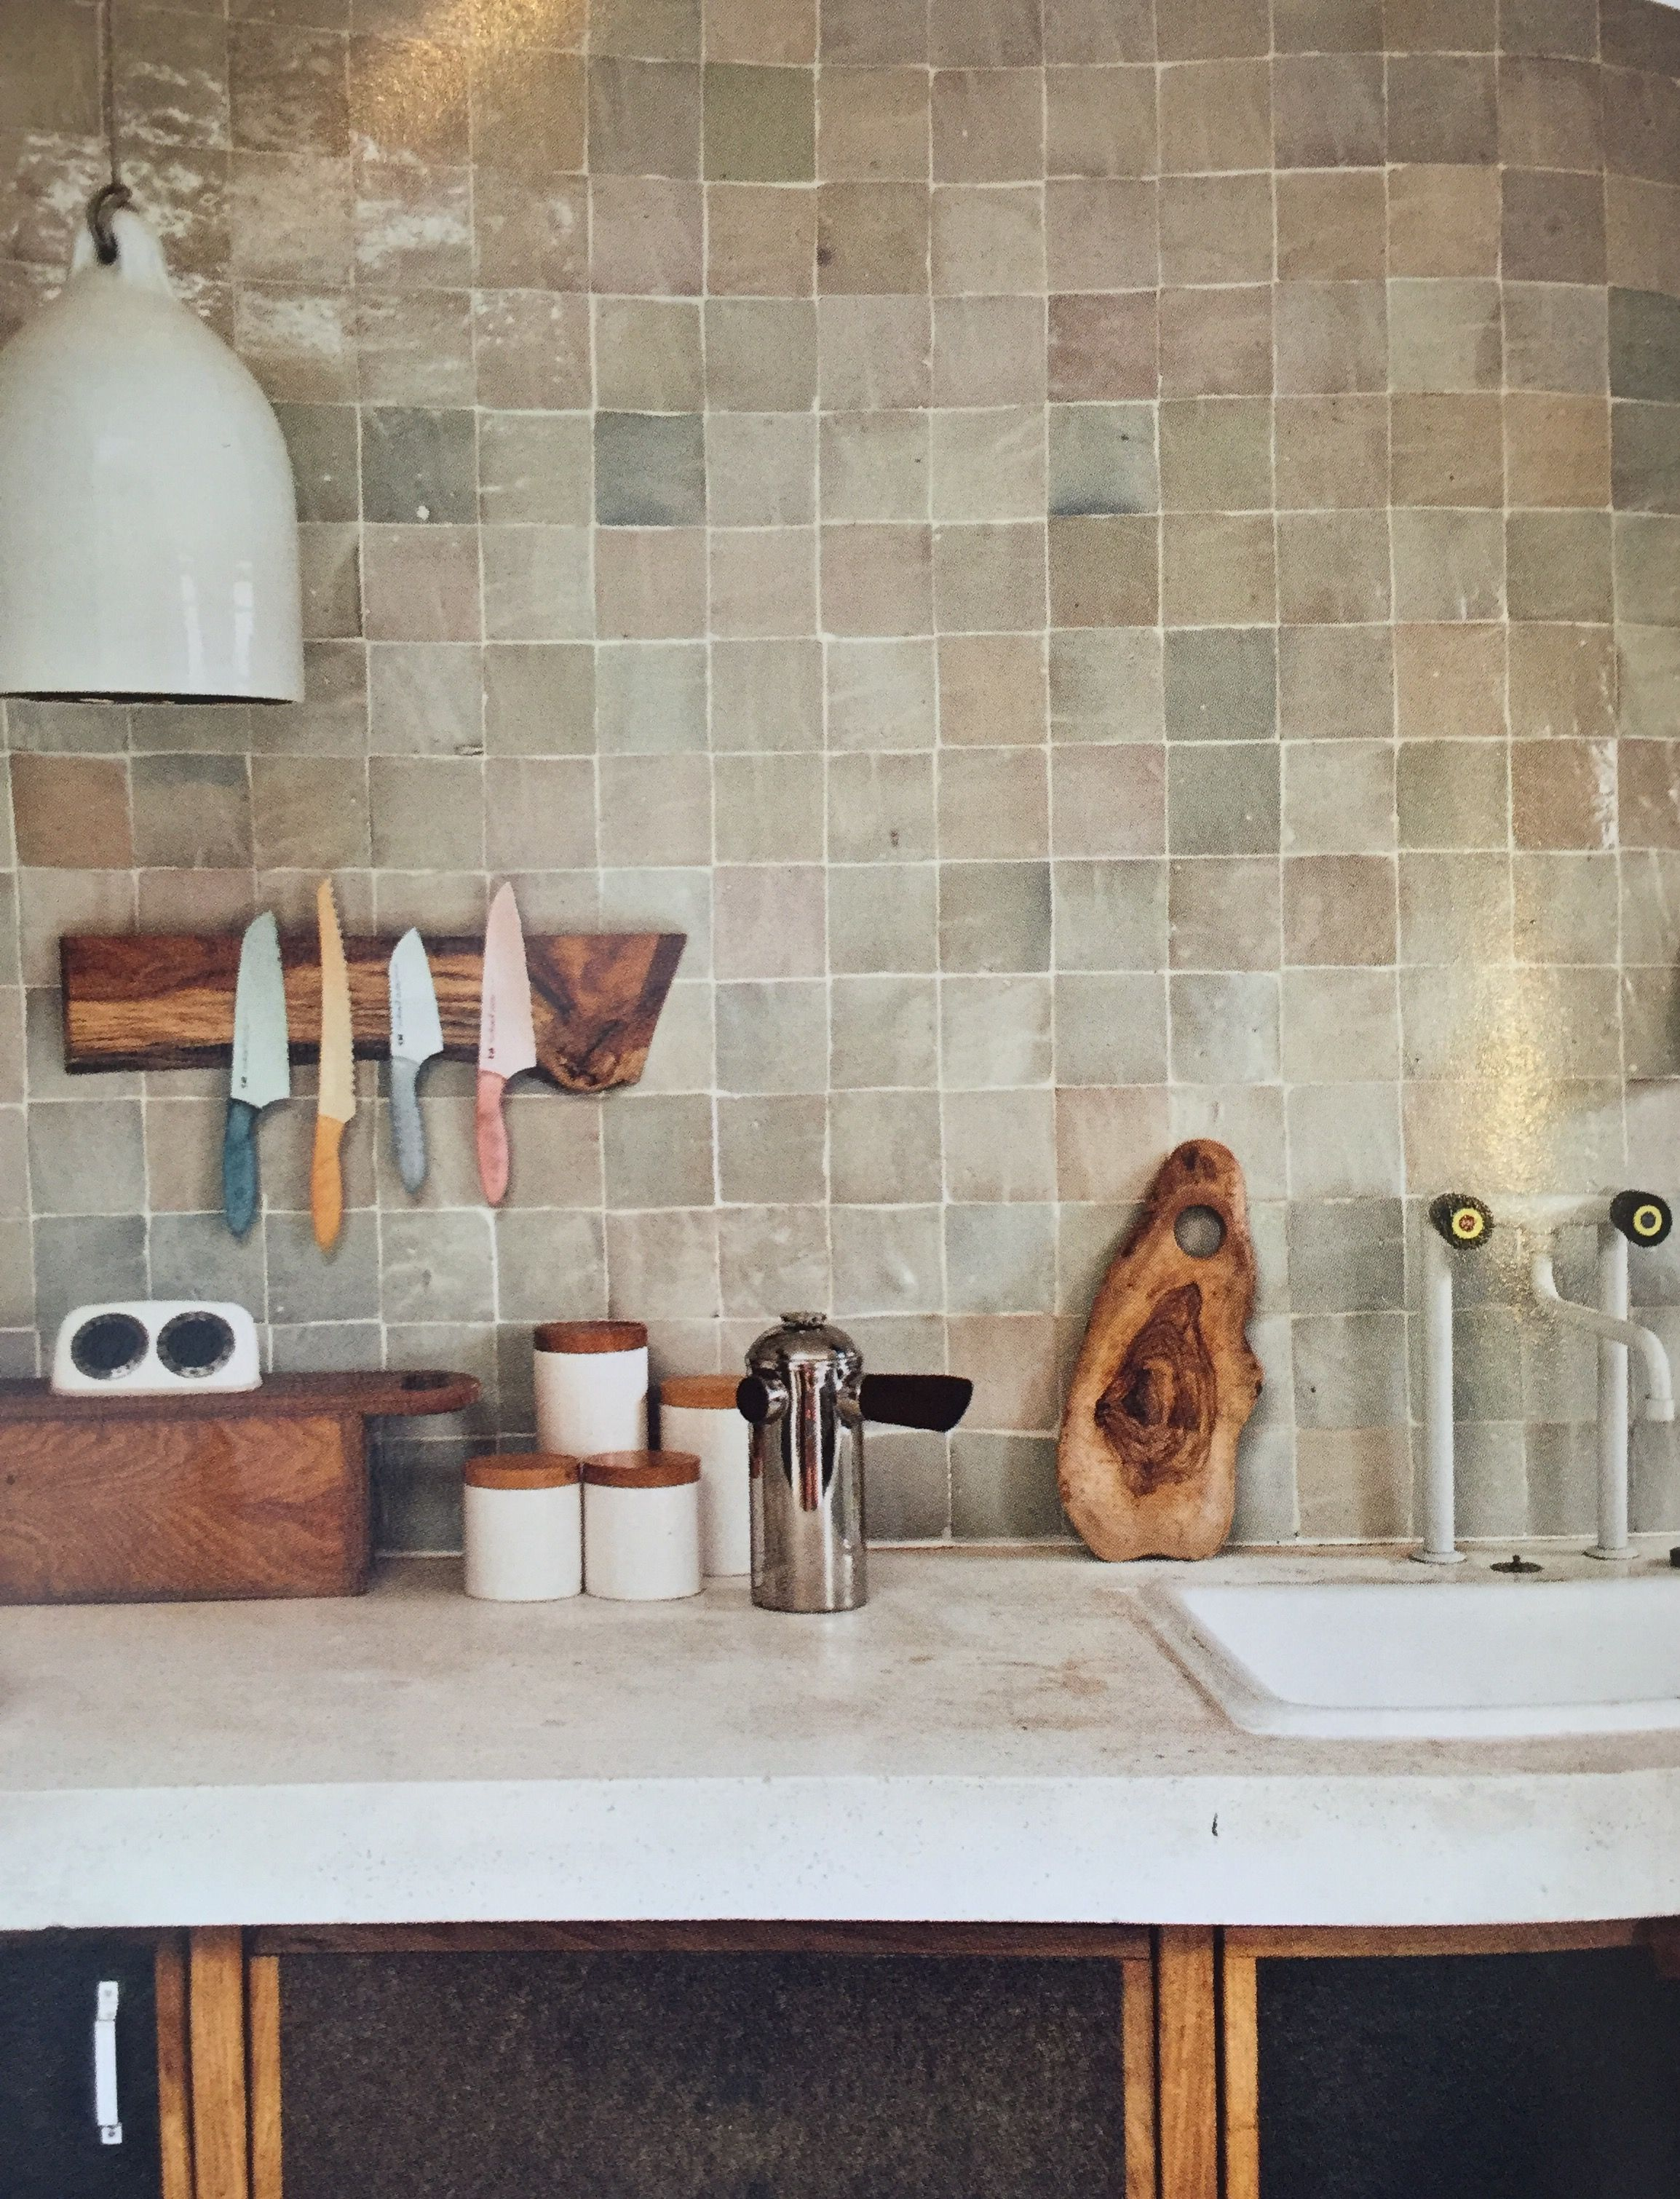 Pin By Cynthia Shelley On Bathrooms Kitchen Tiles Backsplash Tiles